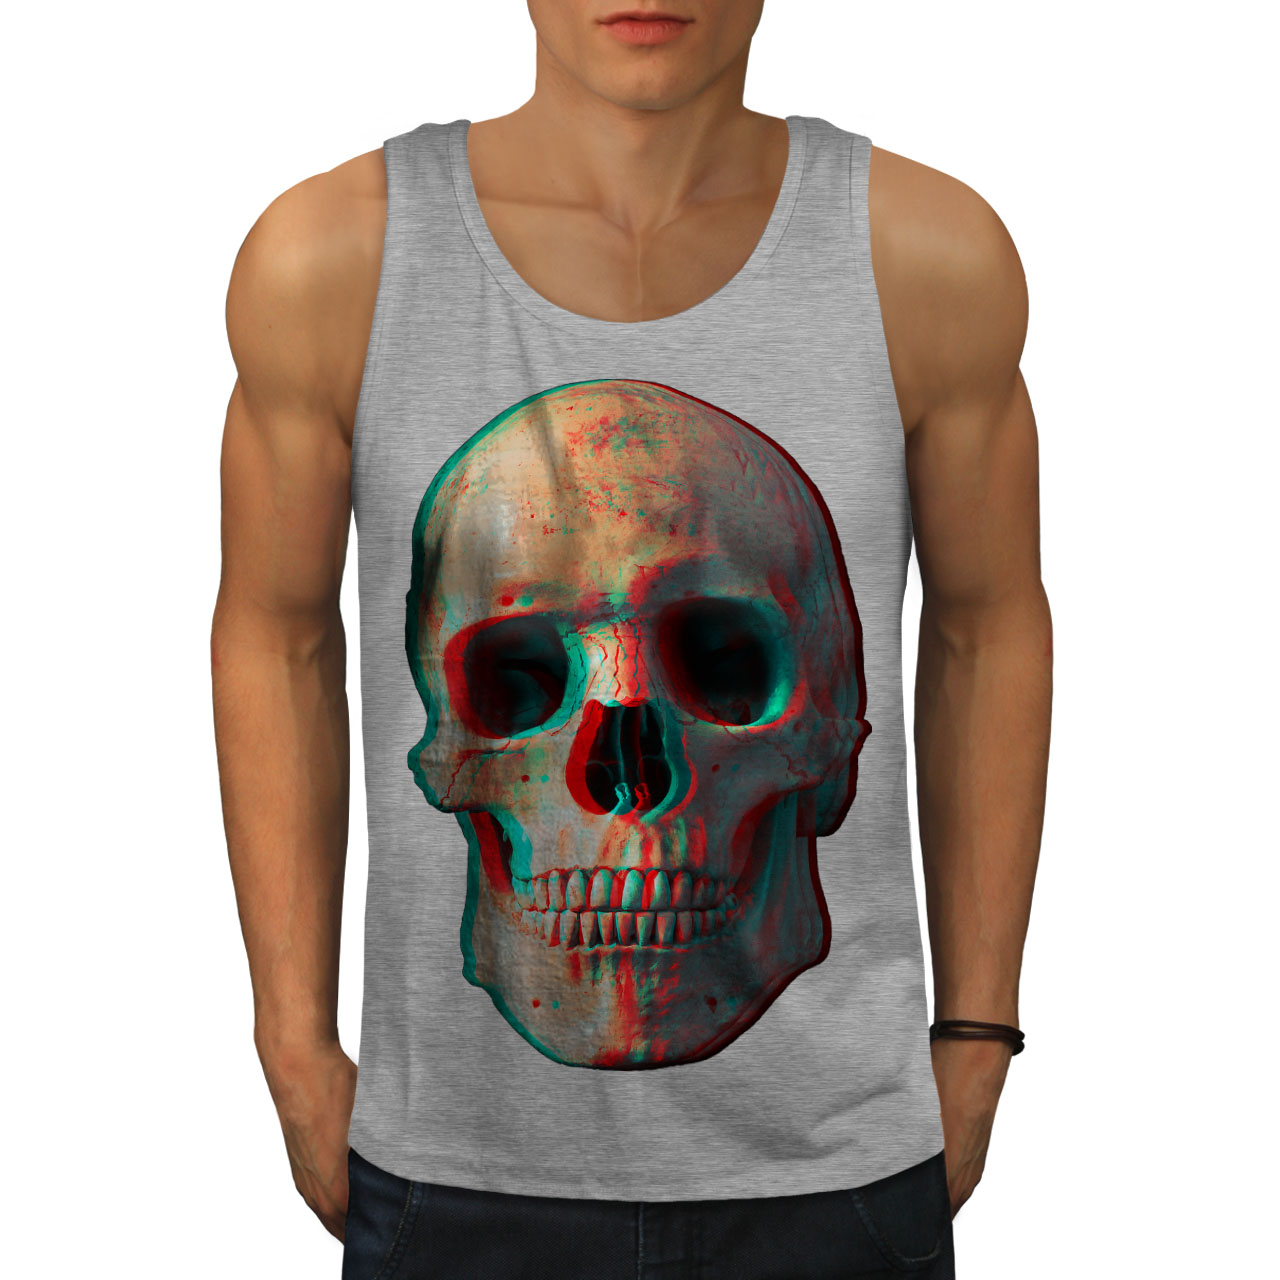 3D Human Skeleton Skull Men Tank Top NEW | Wellcoda | eBay